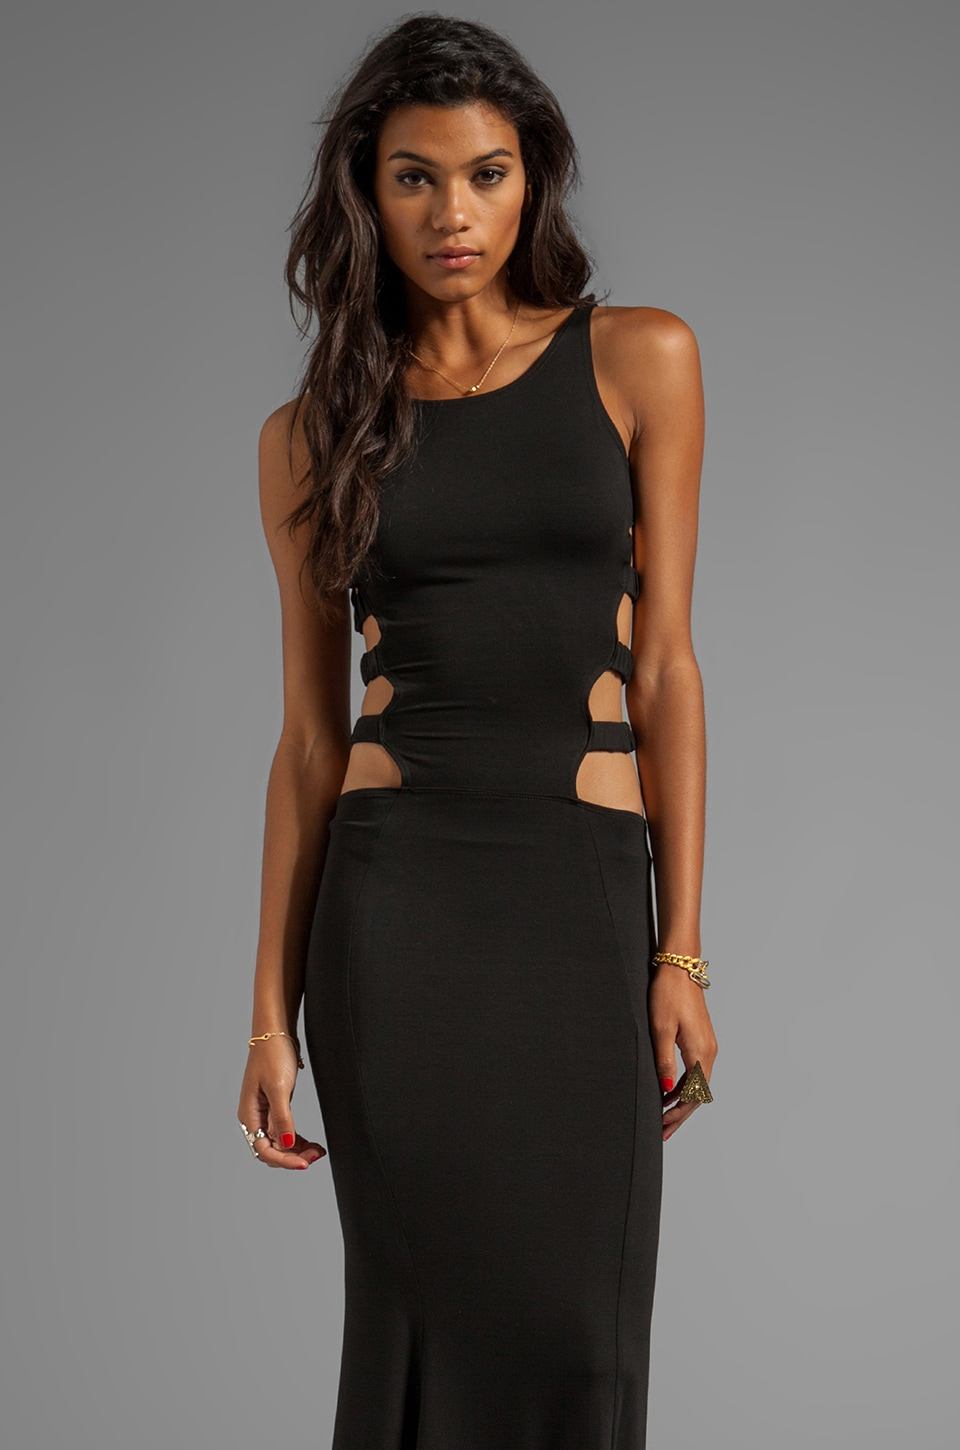 Boulee Florence Cut Out Maxi in Black